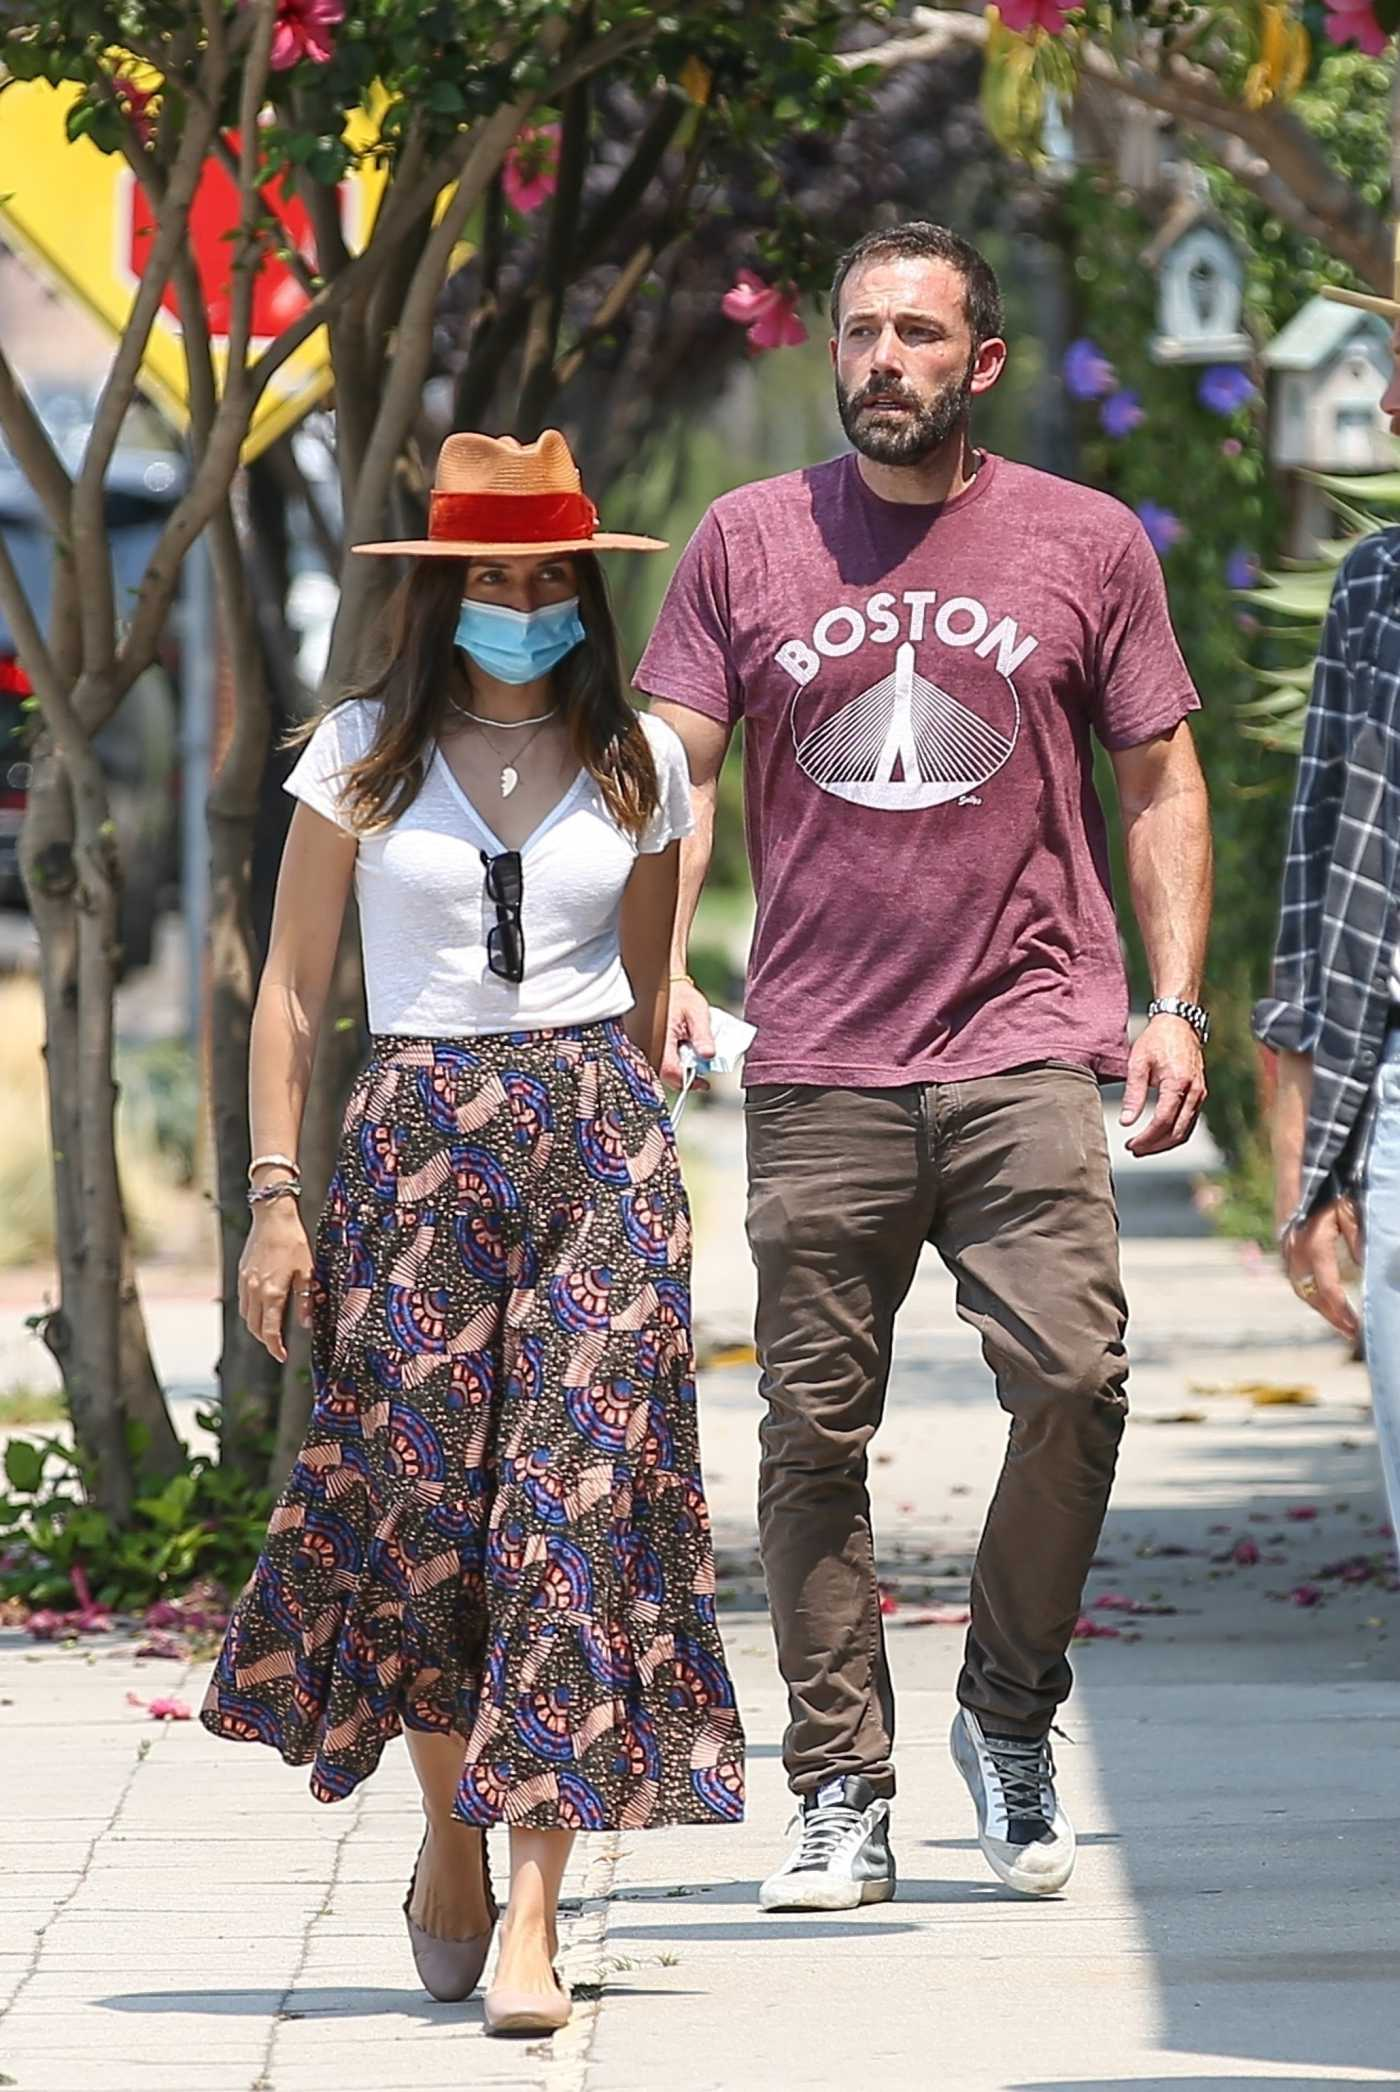 Ana De Armas in a Protective Mask Shops for Hats at Nick Fouquet Hat Shop Out with Ben Affleck in Venice 08/20/2020